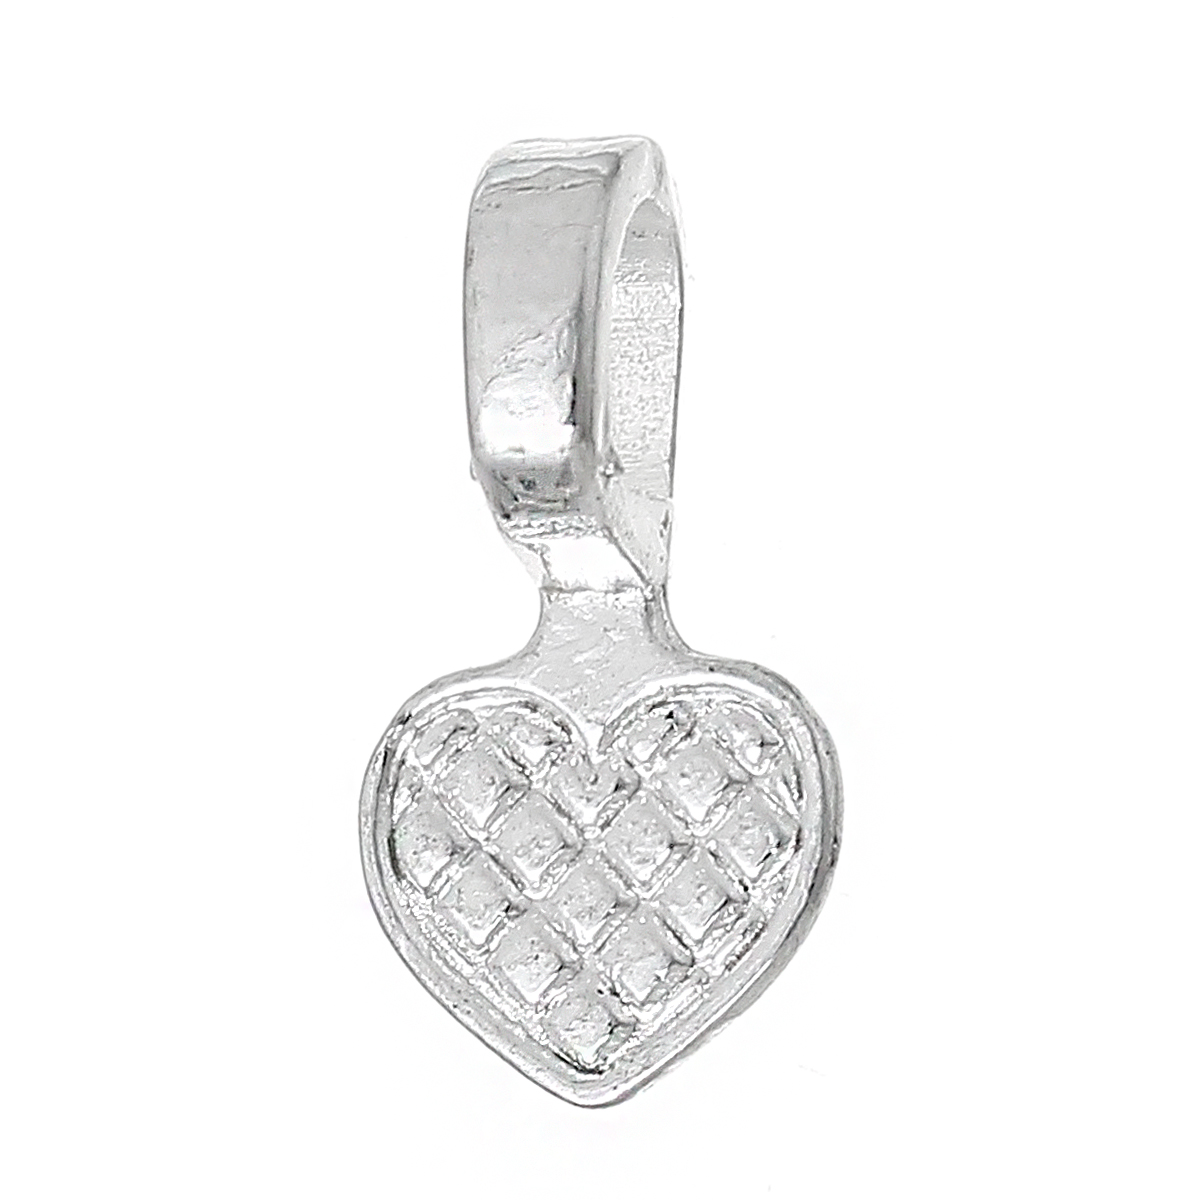 doreenbeads-glue-on-bail-charm-heart-silver-color-168mm-5-8-x-80mm-fontb3-b-font-8200-pcs-2015-new